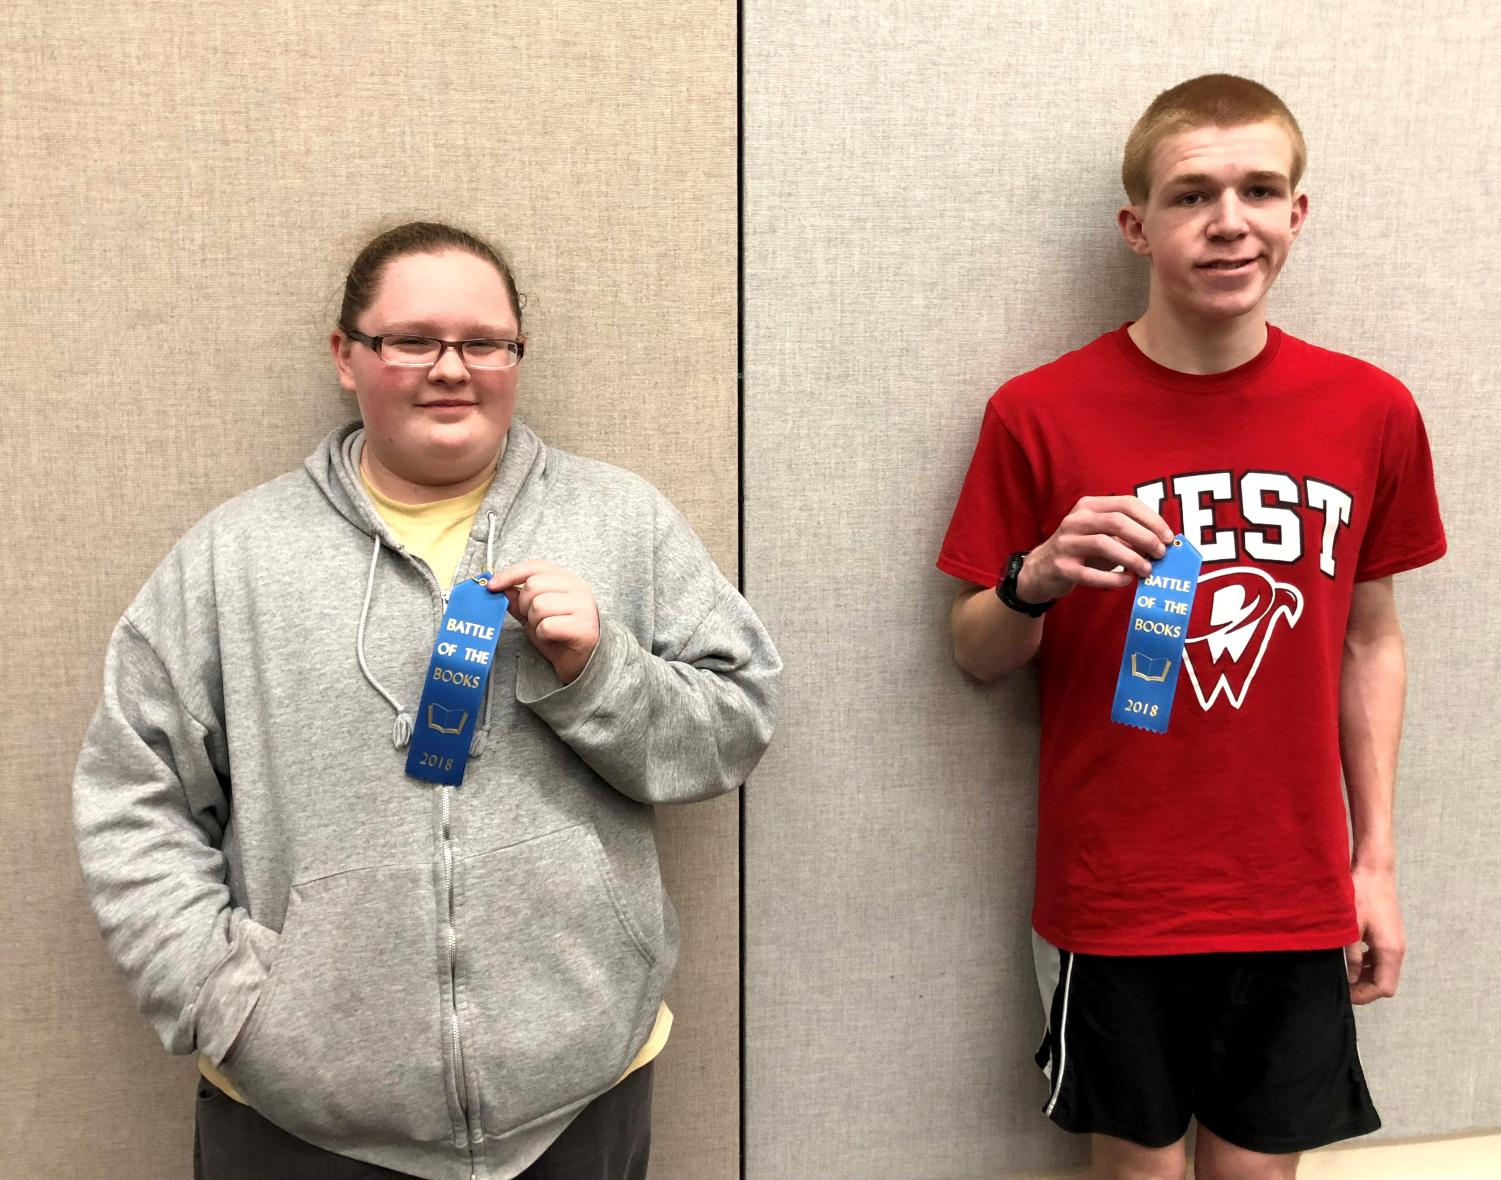 Senior Skylar Hintze (Left) and Junior Anton Kordick (Right) holding participation ribbons after the Battle of the Books competition (2017-18) at the Bettendorf Public Library.